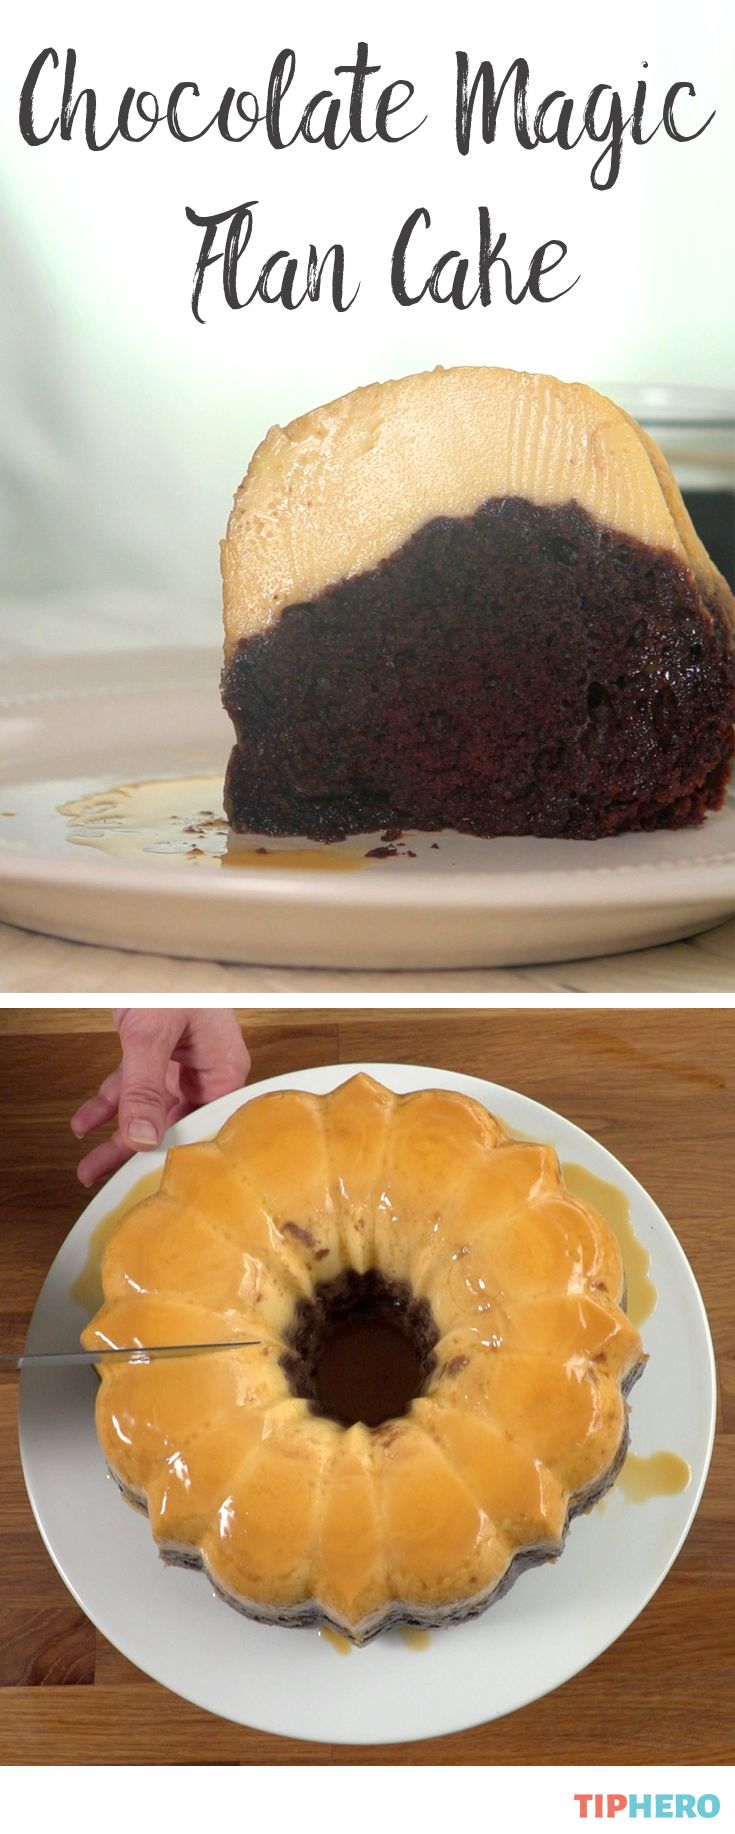 This recipe is magical for several reasons. 1: it combines the incredible flavors of Devil's Food cake and flan for a sweet treat that's out of this world. 2: it's easy. So easy. 3, and MOST important: it does a magic trick while it bakes. Seriously - click to watch it!